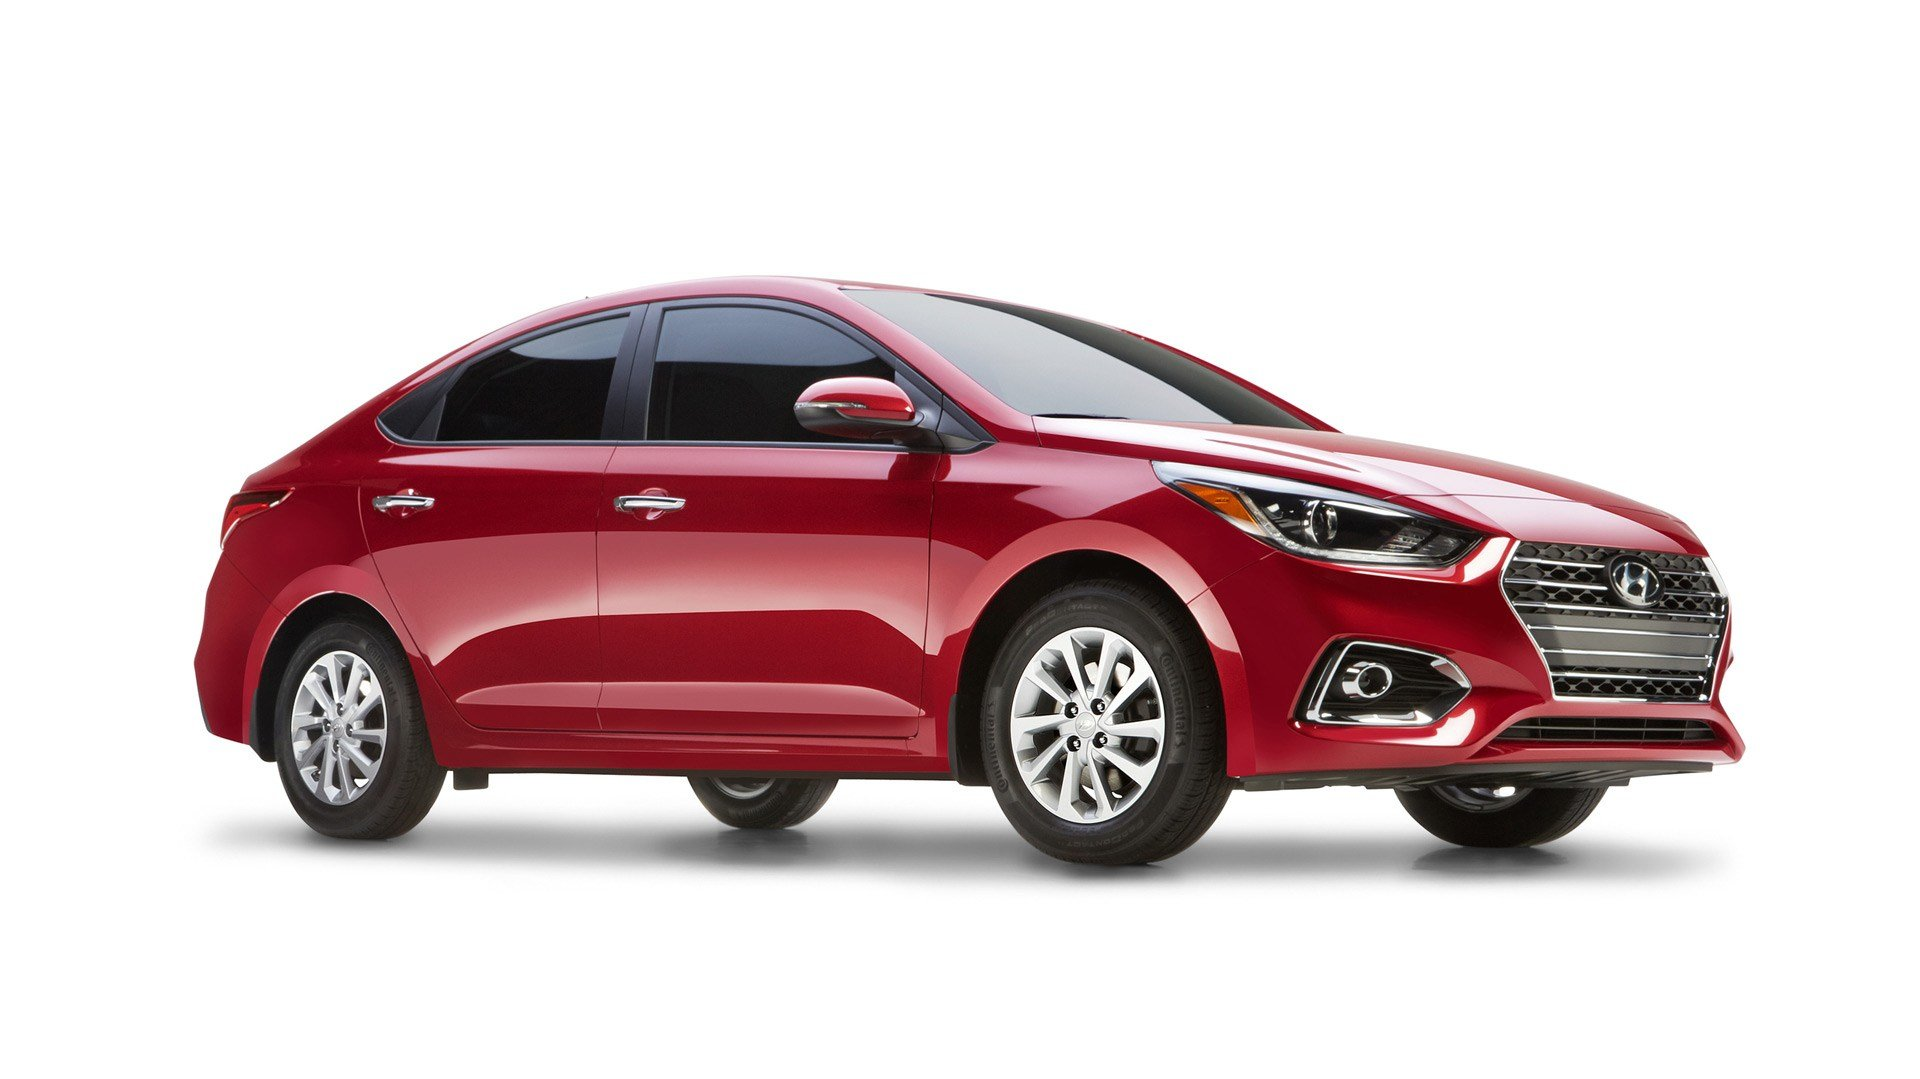 New Hyundai Accent 2019 1 6L Gls In Oman New Car Prices On This Month